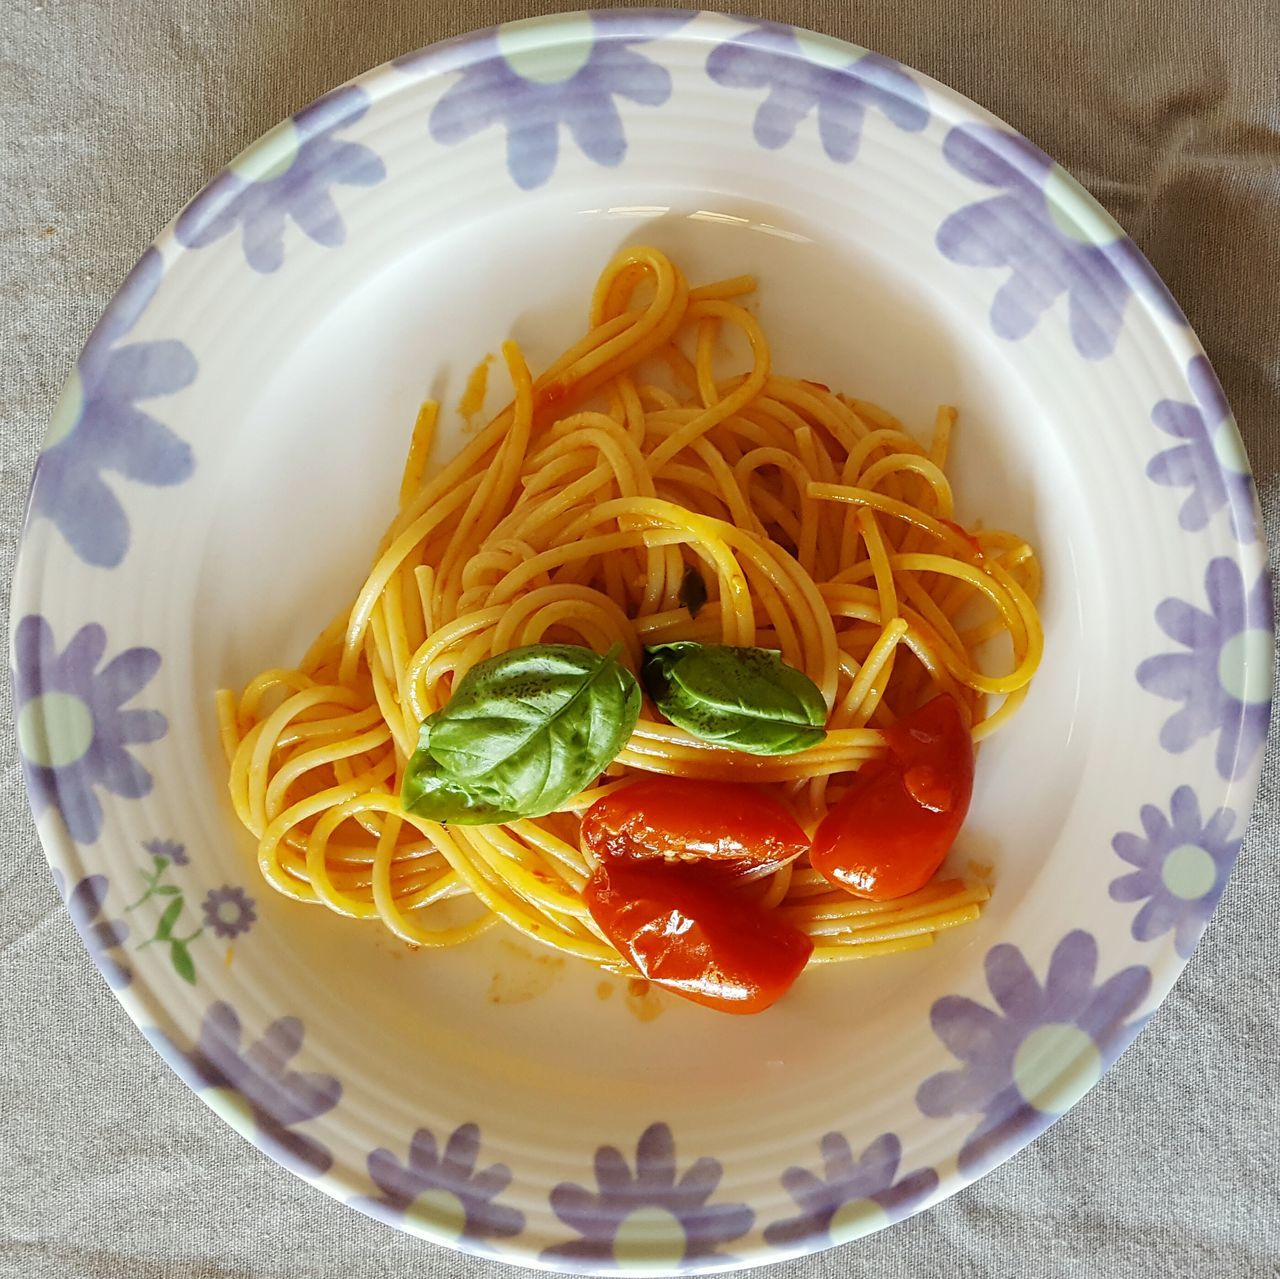 Foodporn Foodphotography Food Plate Of Food Spaghetti <3 Basile Tomato Lauch Italian Colors Italian Food Italia Italy Pasta For Lunch Pasta Time Pasta